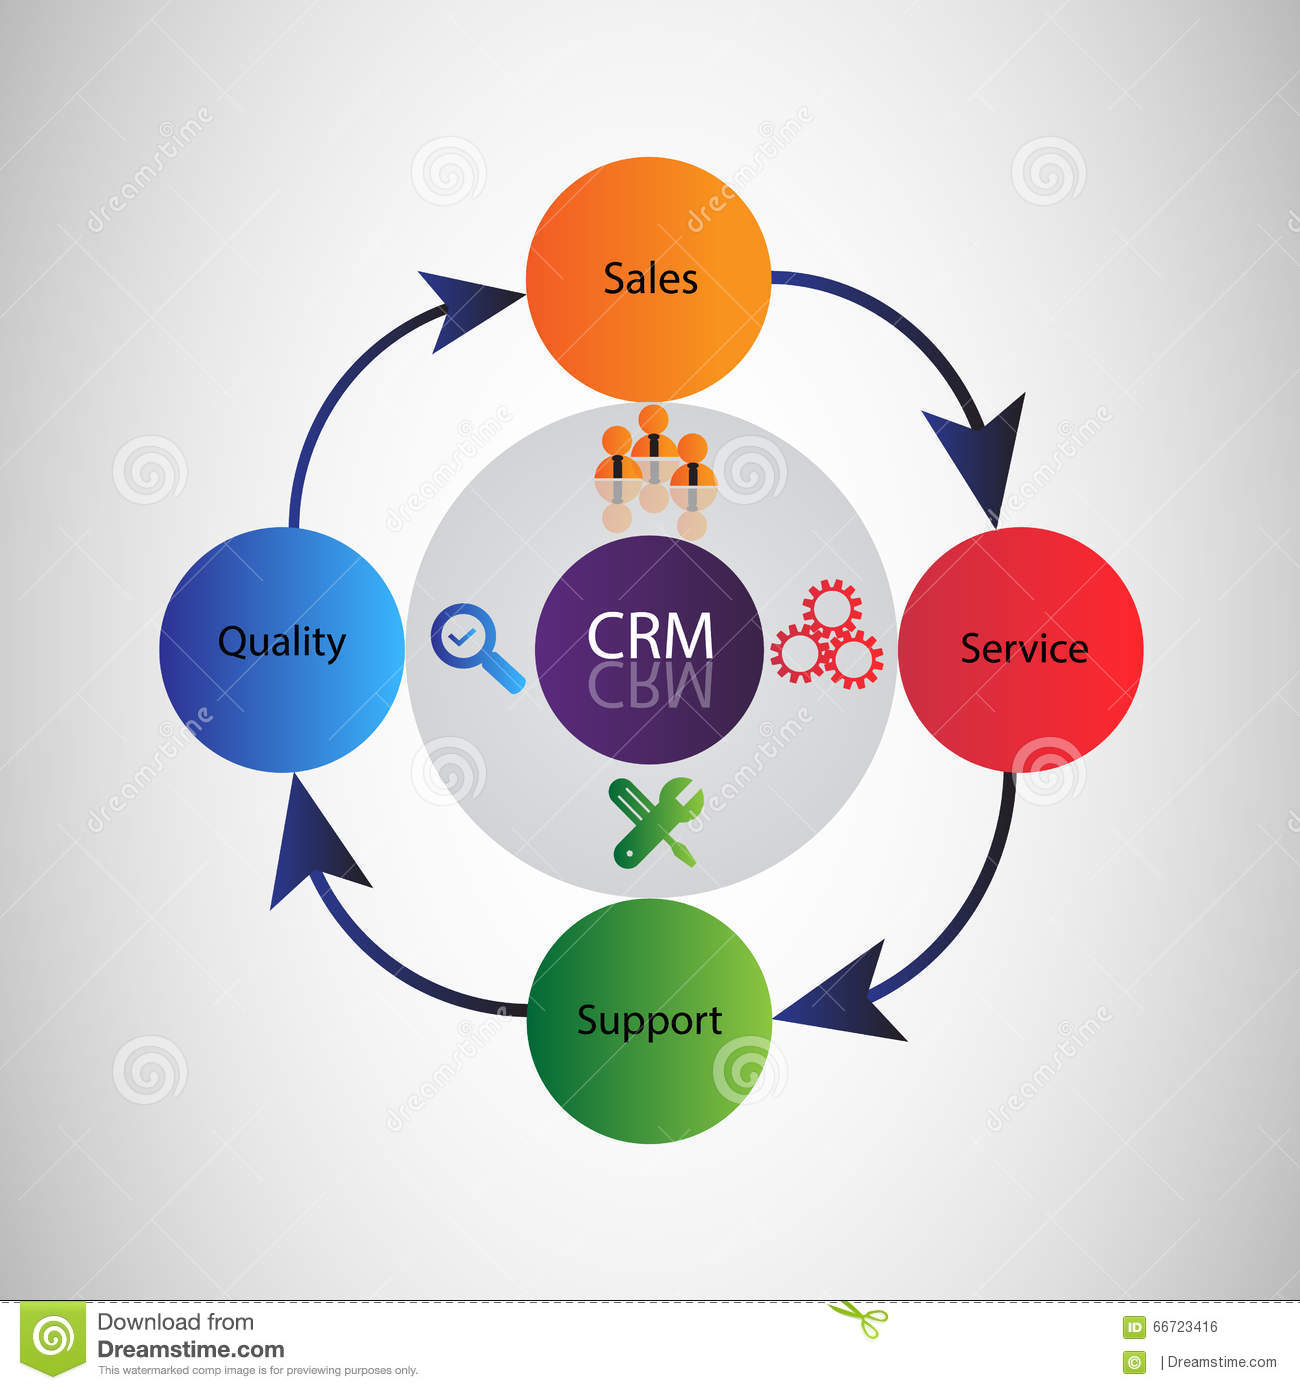 Goals of customer relationship management